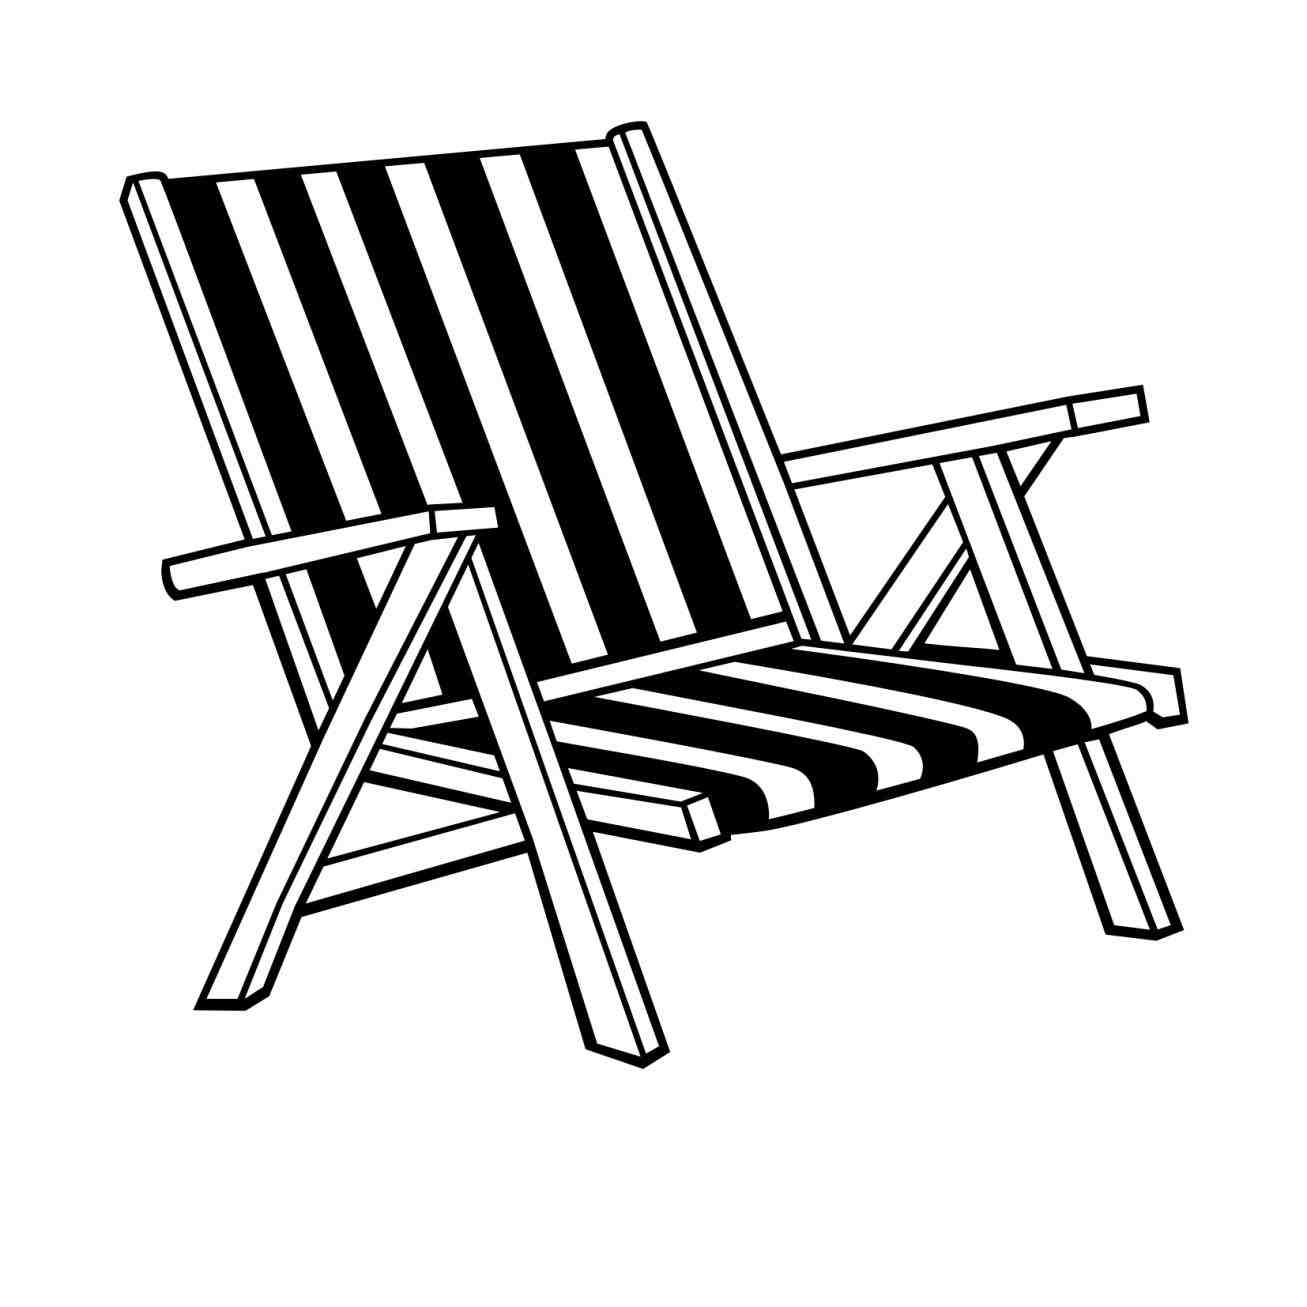 Lawn Chair Drawing At Getdrawings Com Free For Personal